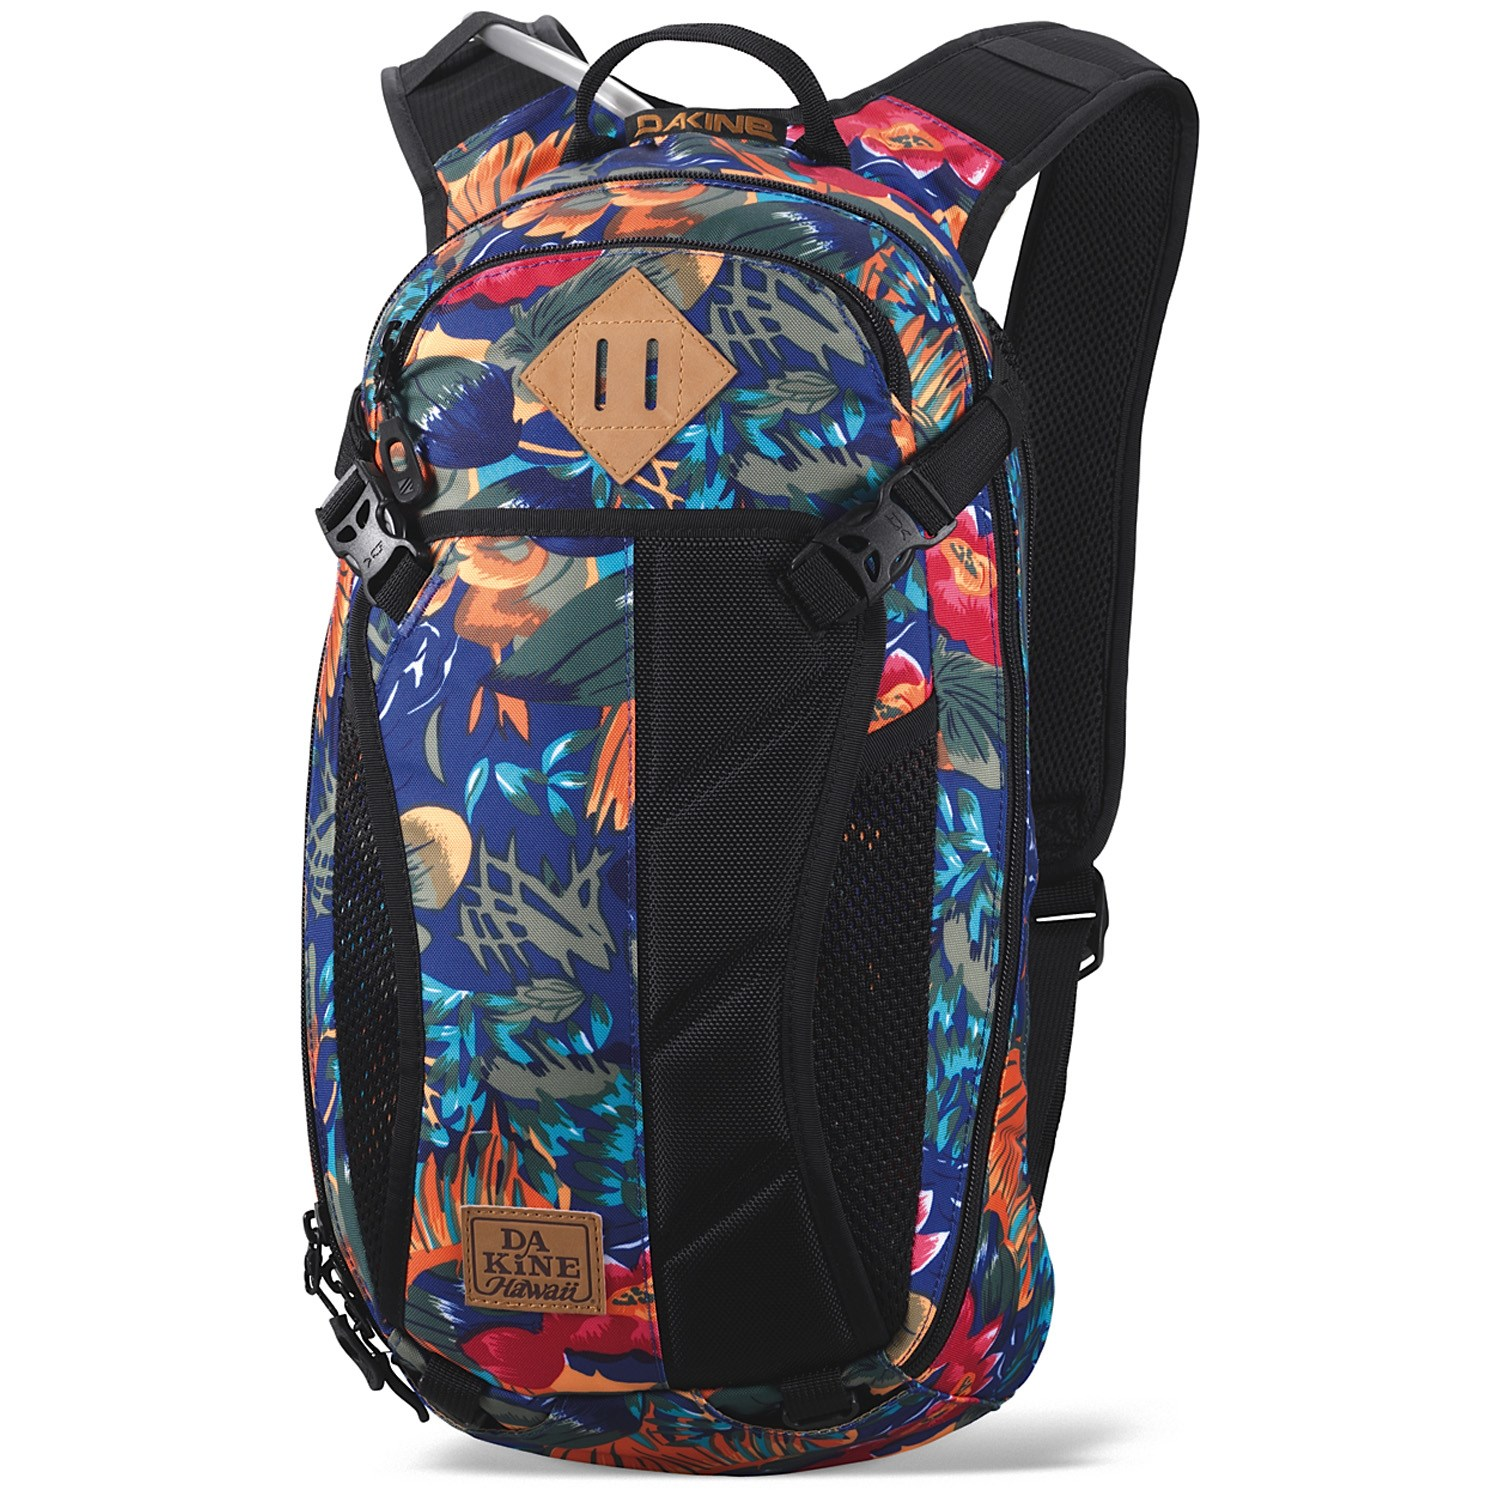 DaKine Drafter 12L Hydration Pack | evo outlet